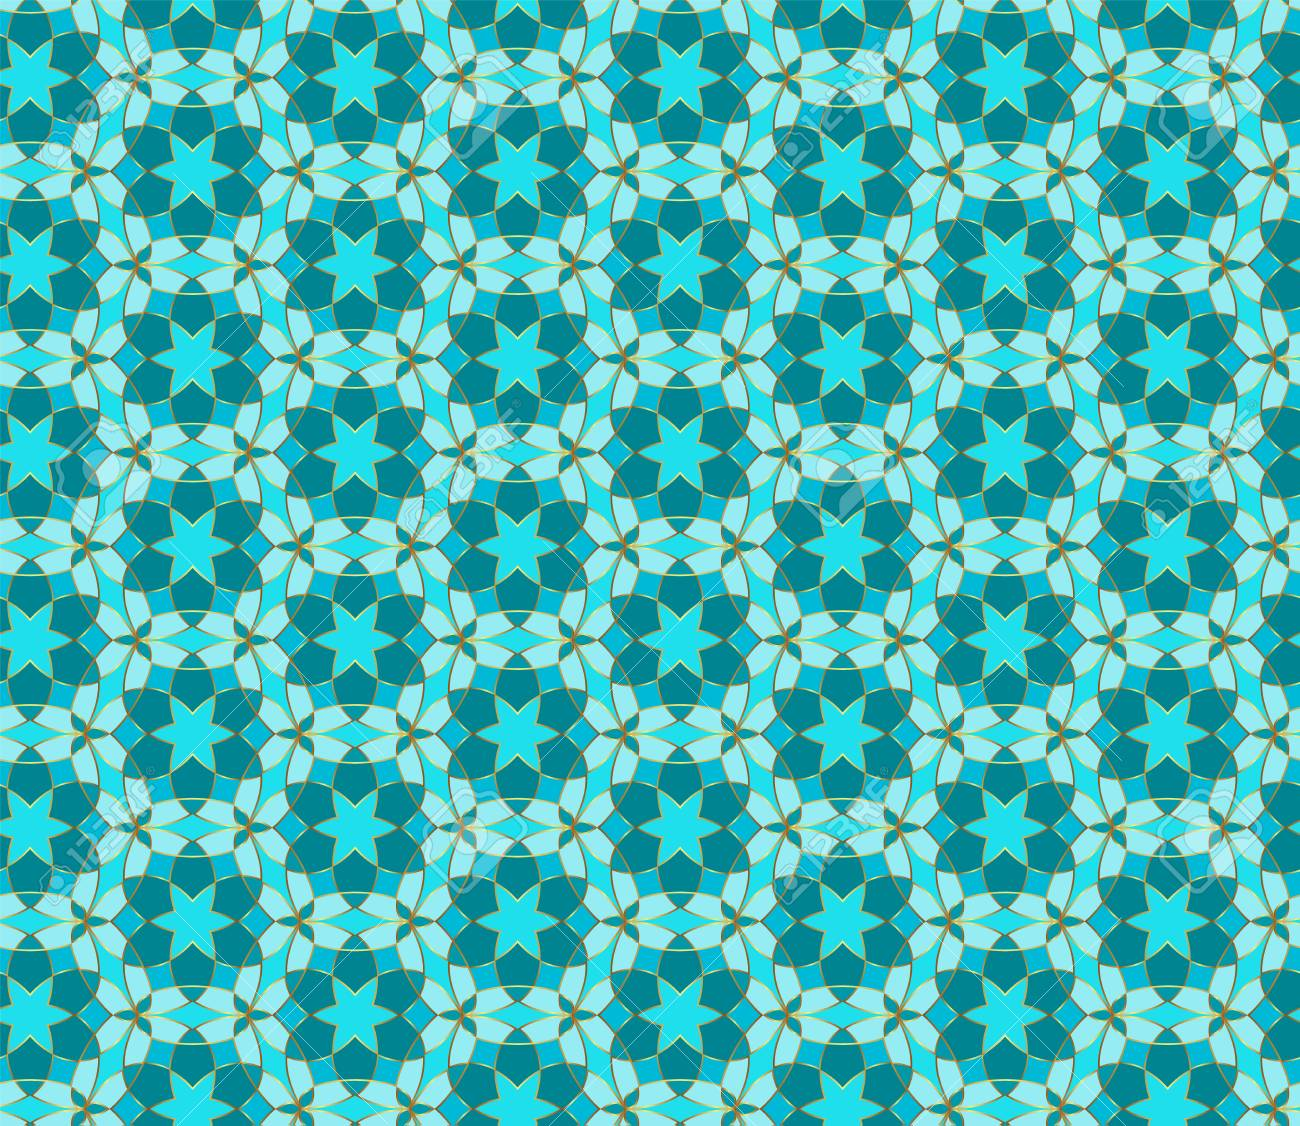 Floral Seamless Lace Pattern Geometric Mosaic Background Mint